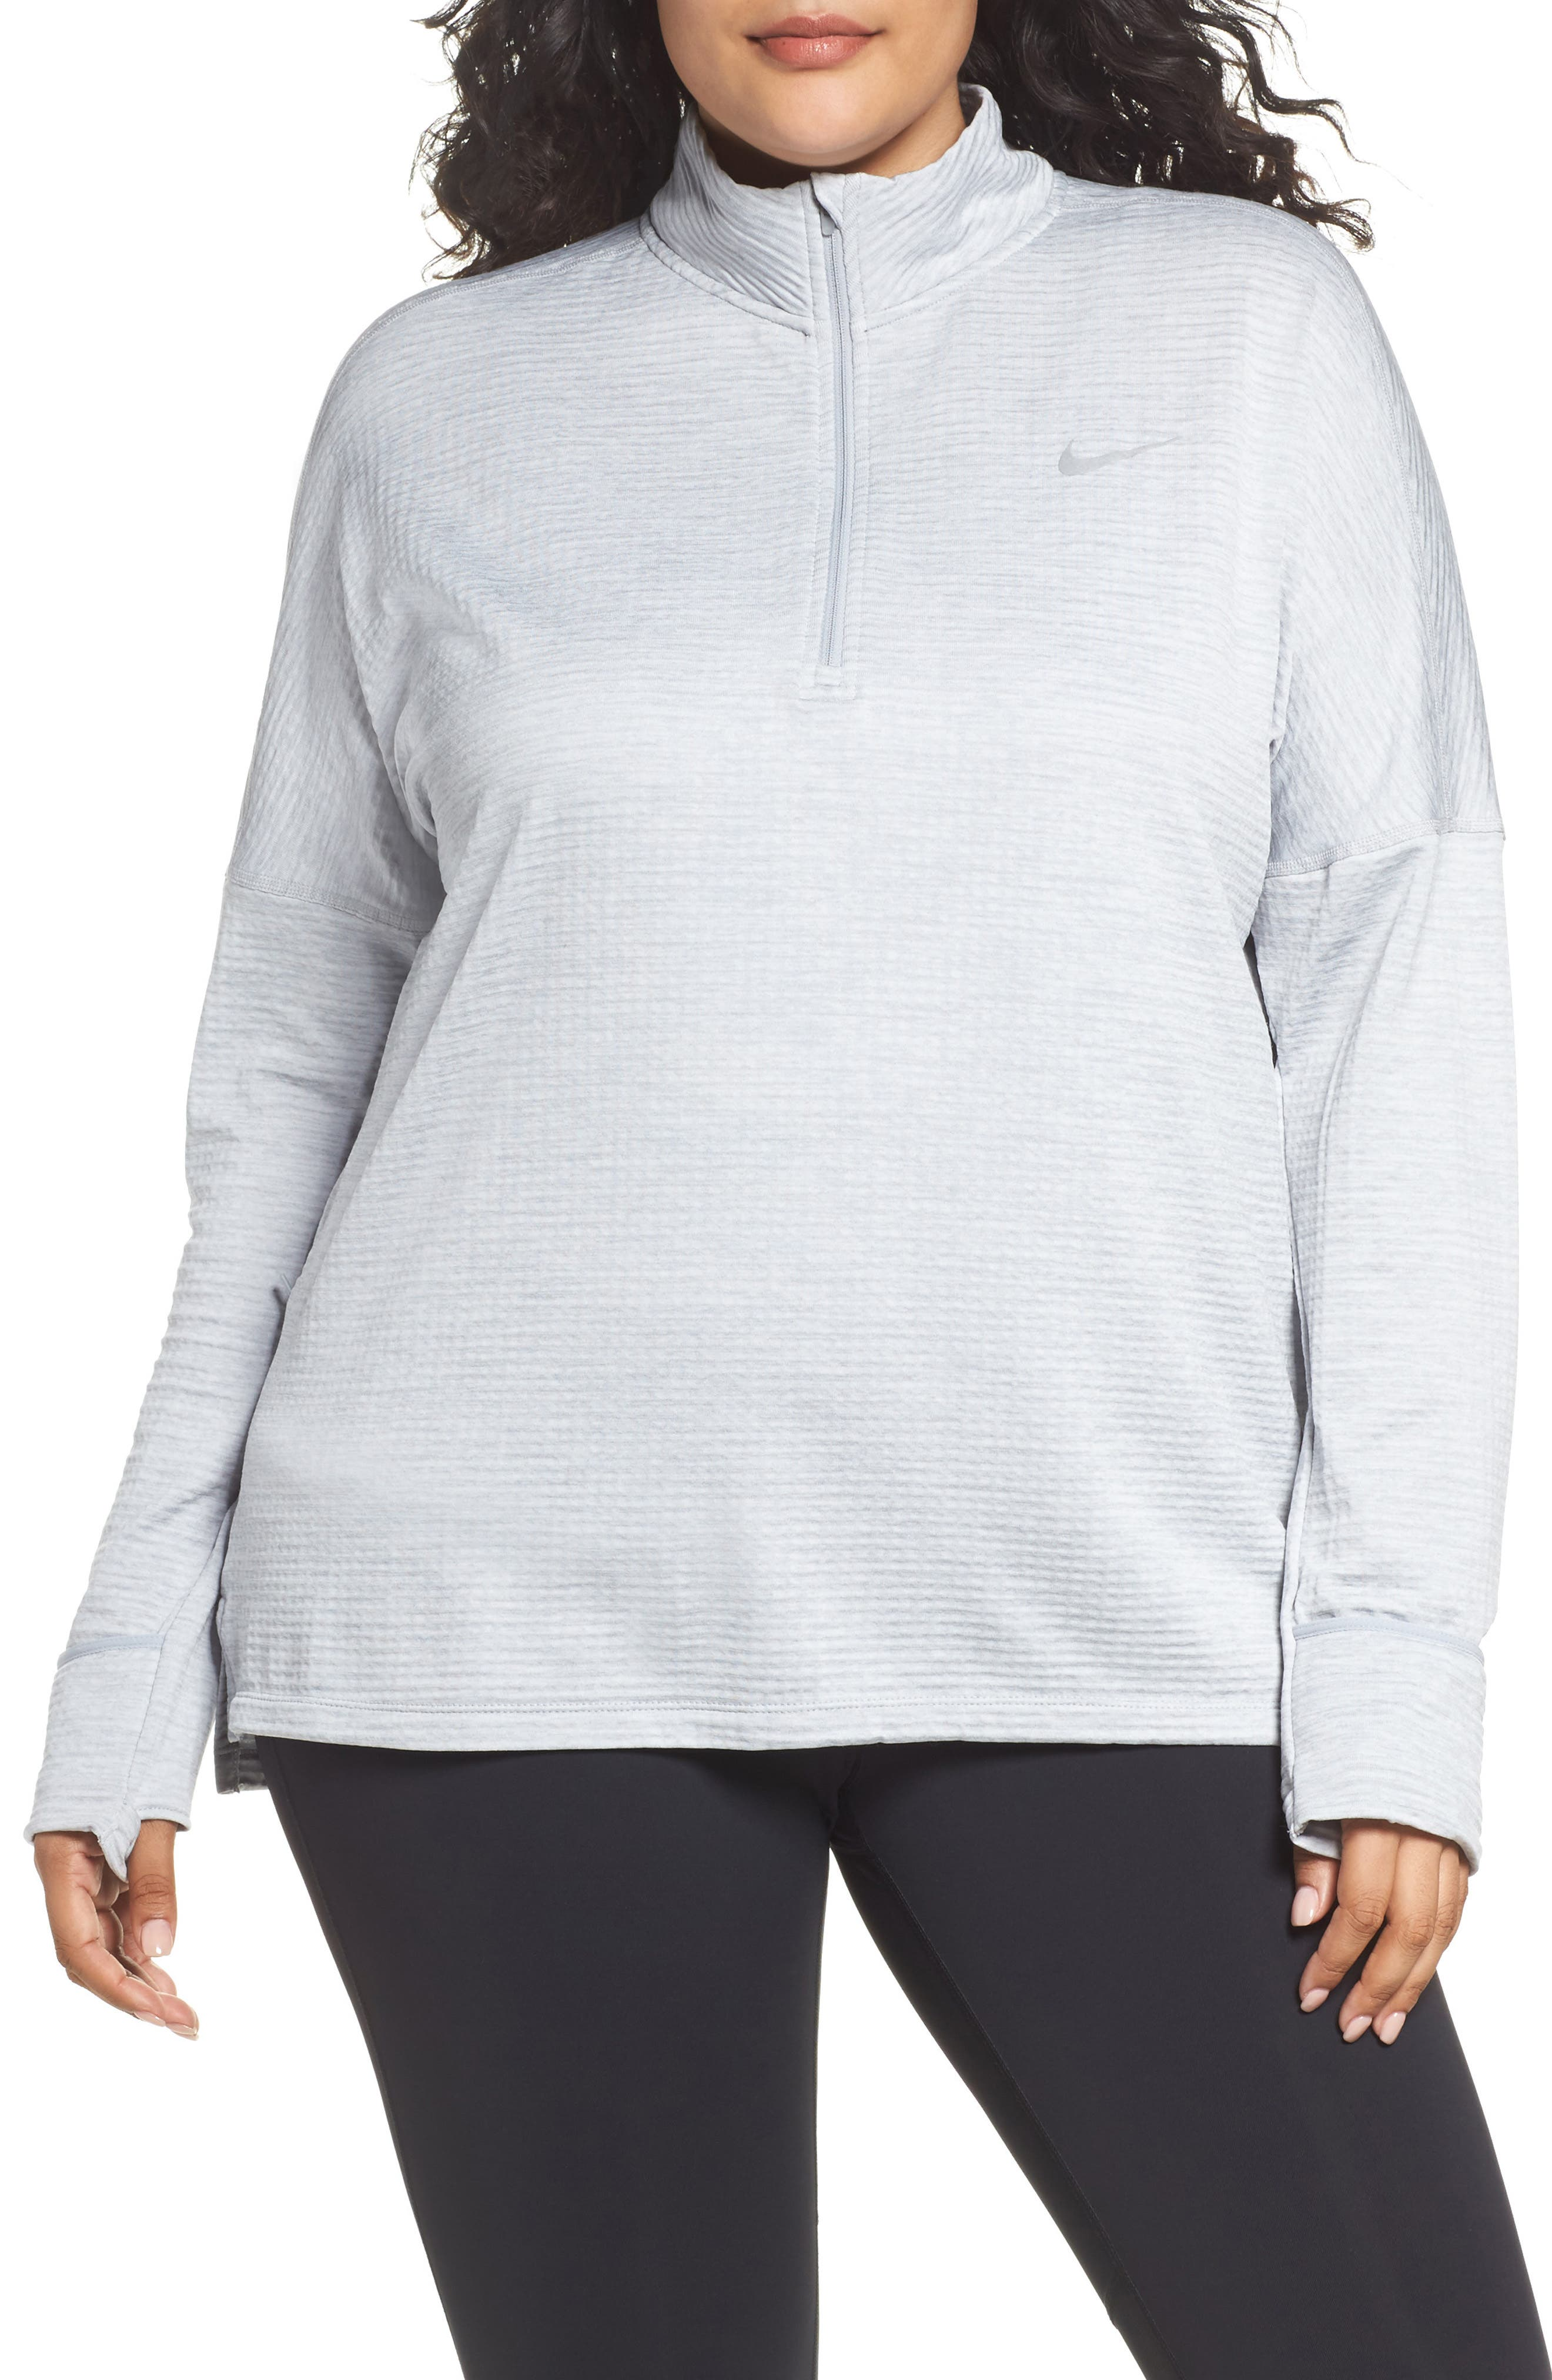 Sphere Element Long Sleeve Running Top,                         Main,                         color, Wolf Grey/ Htr/ Wolf Grey